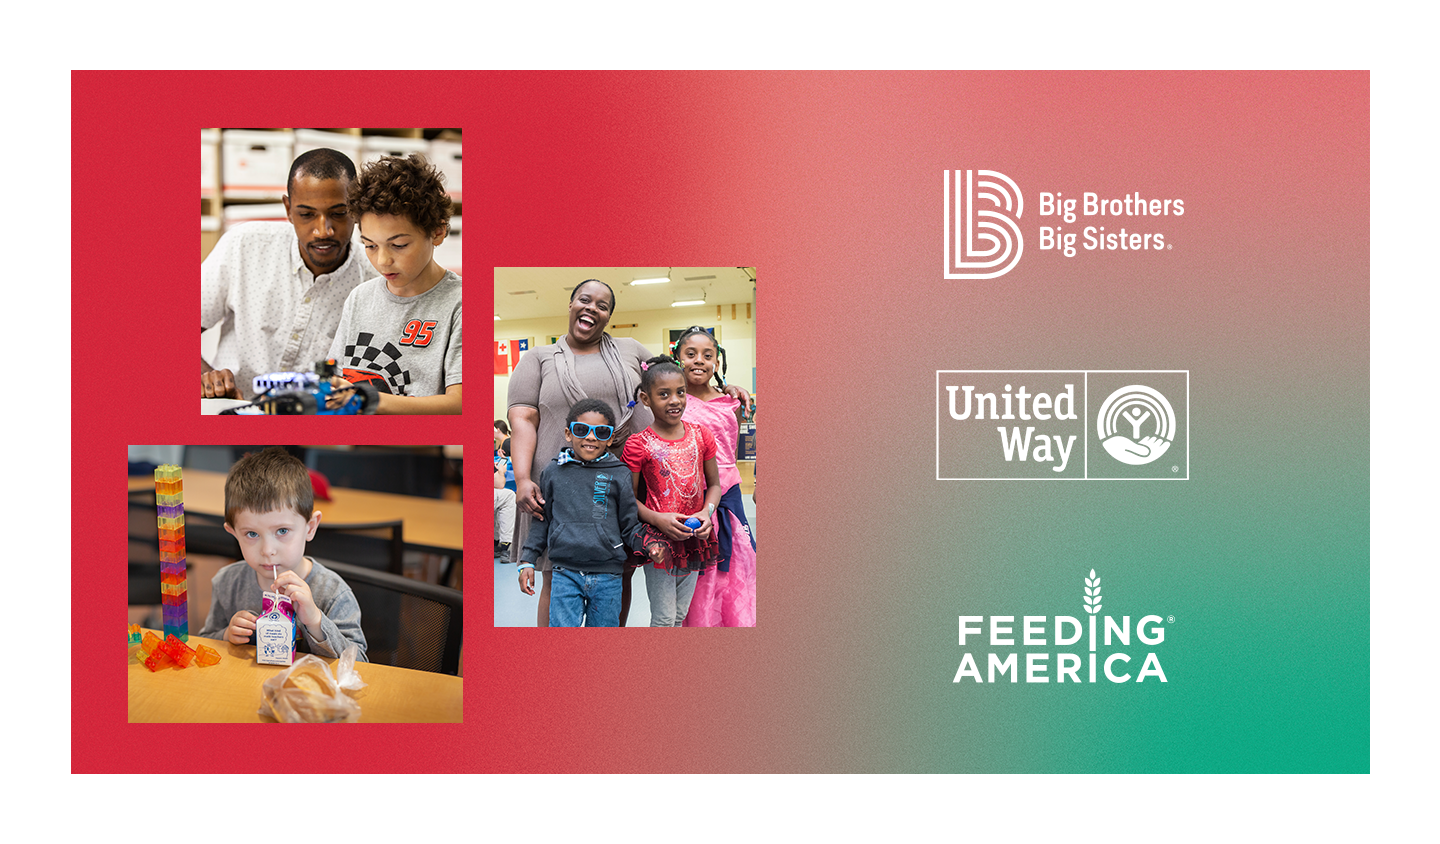 Logos of partner organizations: Big Brothers Big Sisters, United Way, and Feeding America